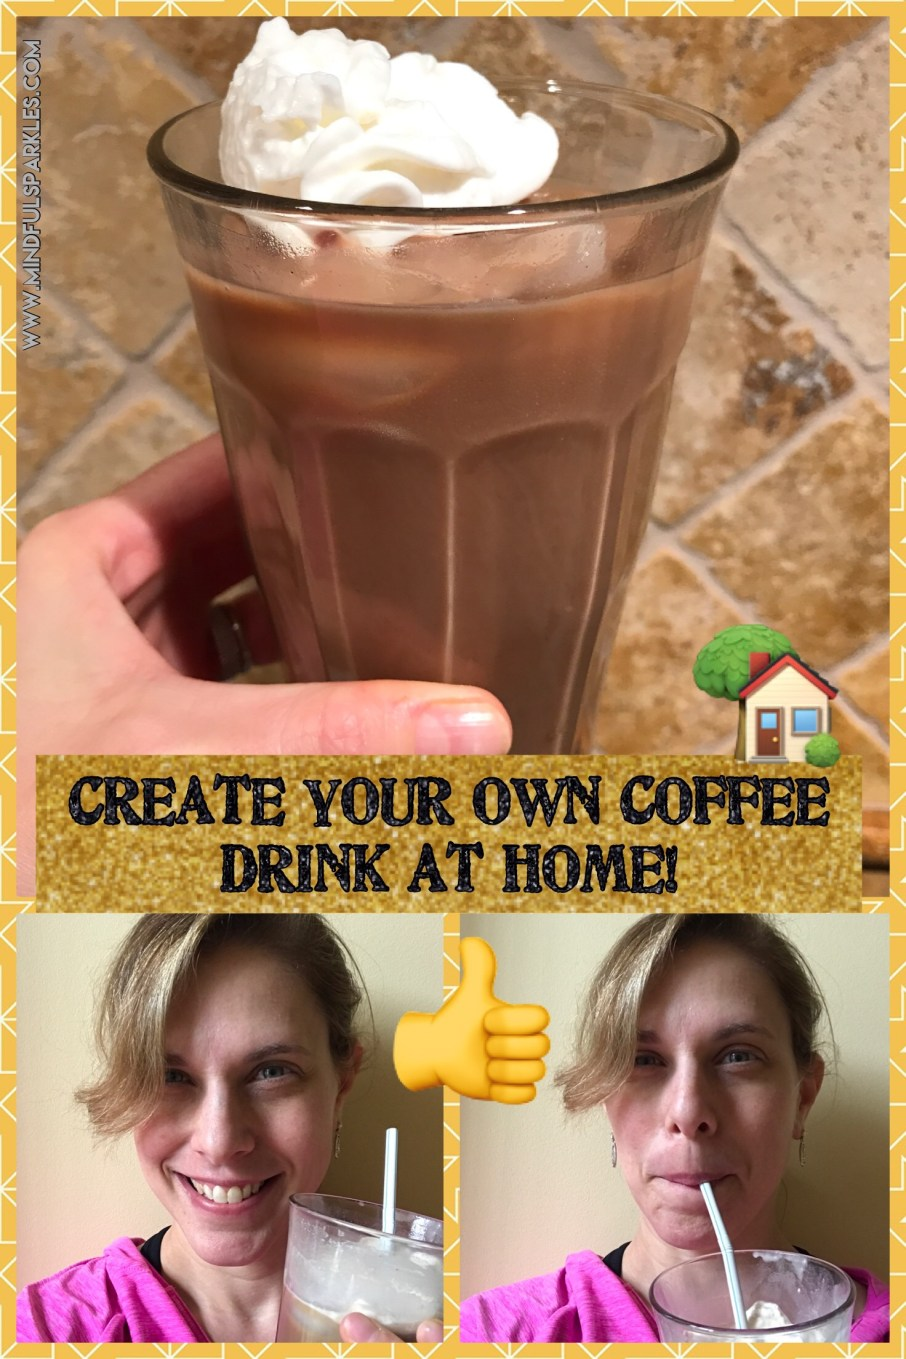 Make your own coffee drinks at home